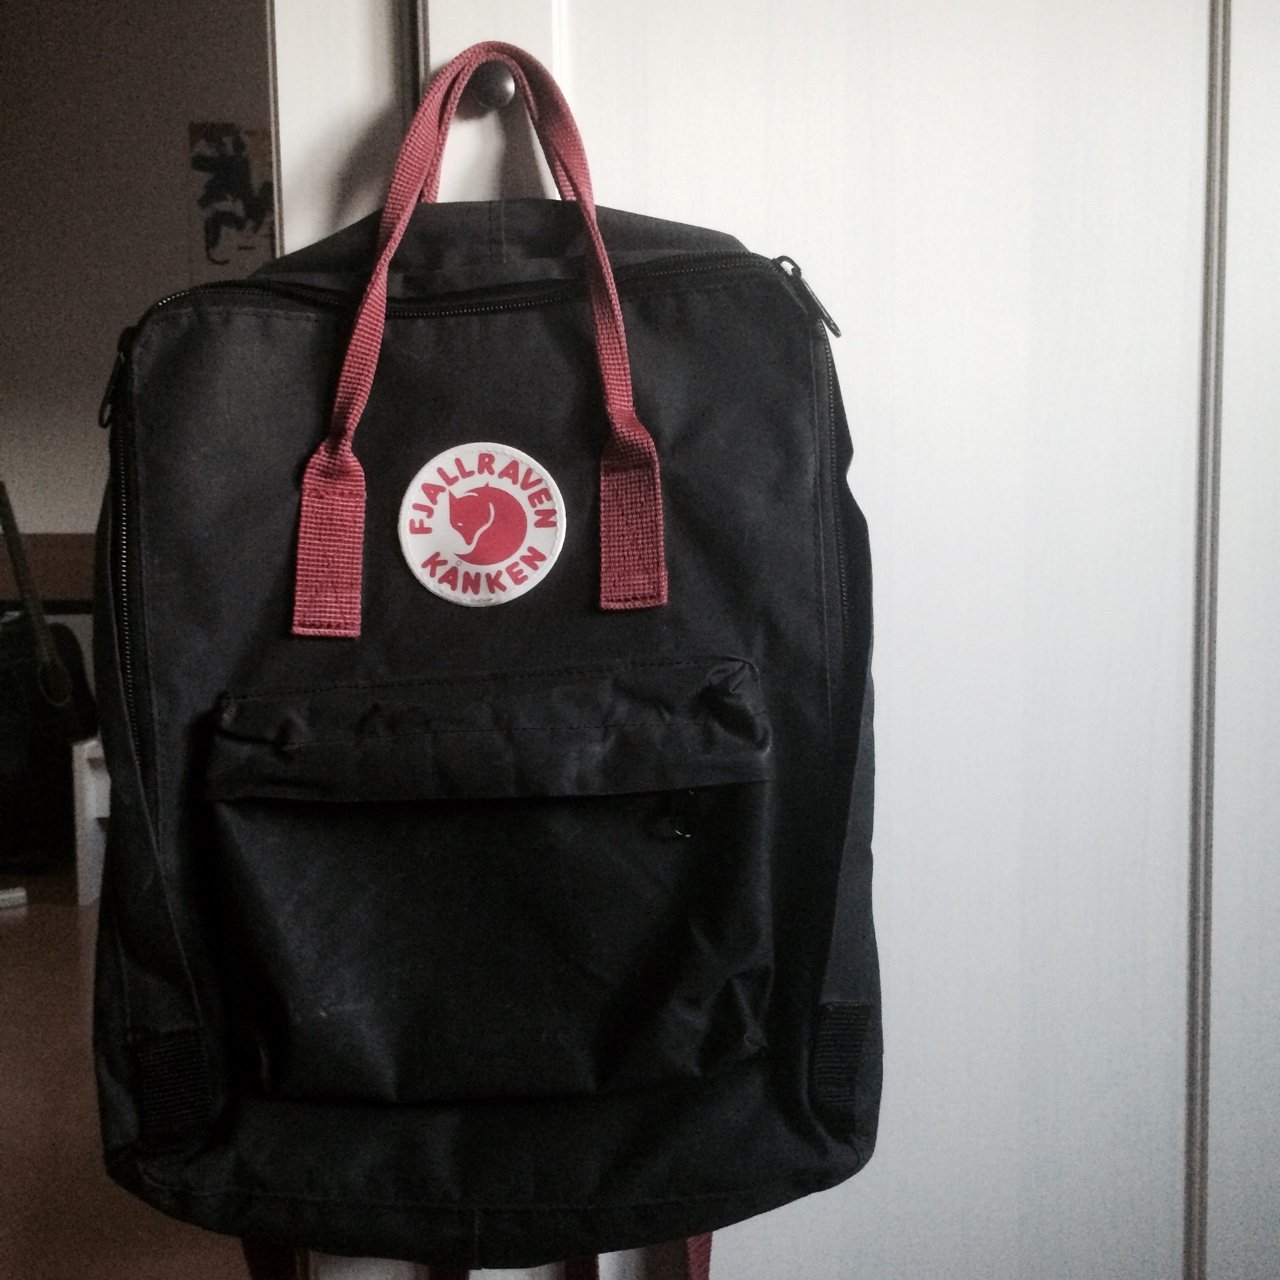 4acdfe5b24c Fjällräven classic Kanken backpack. Black and Oxred. Bought - Depop